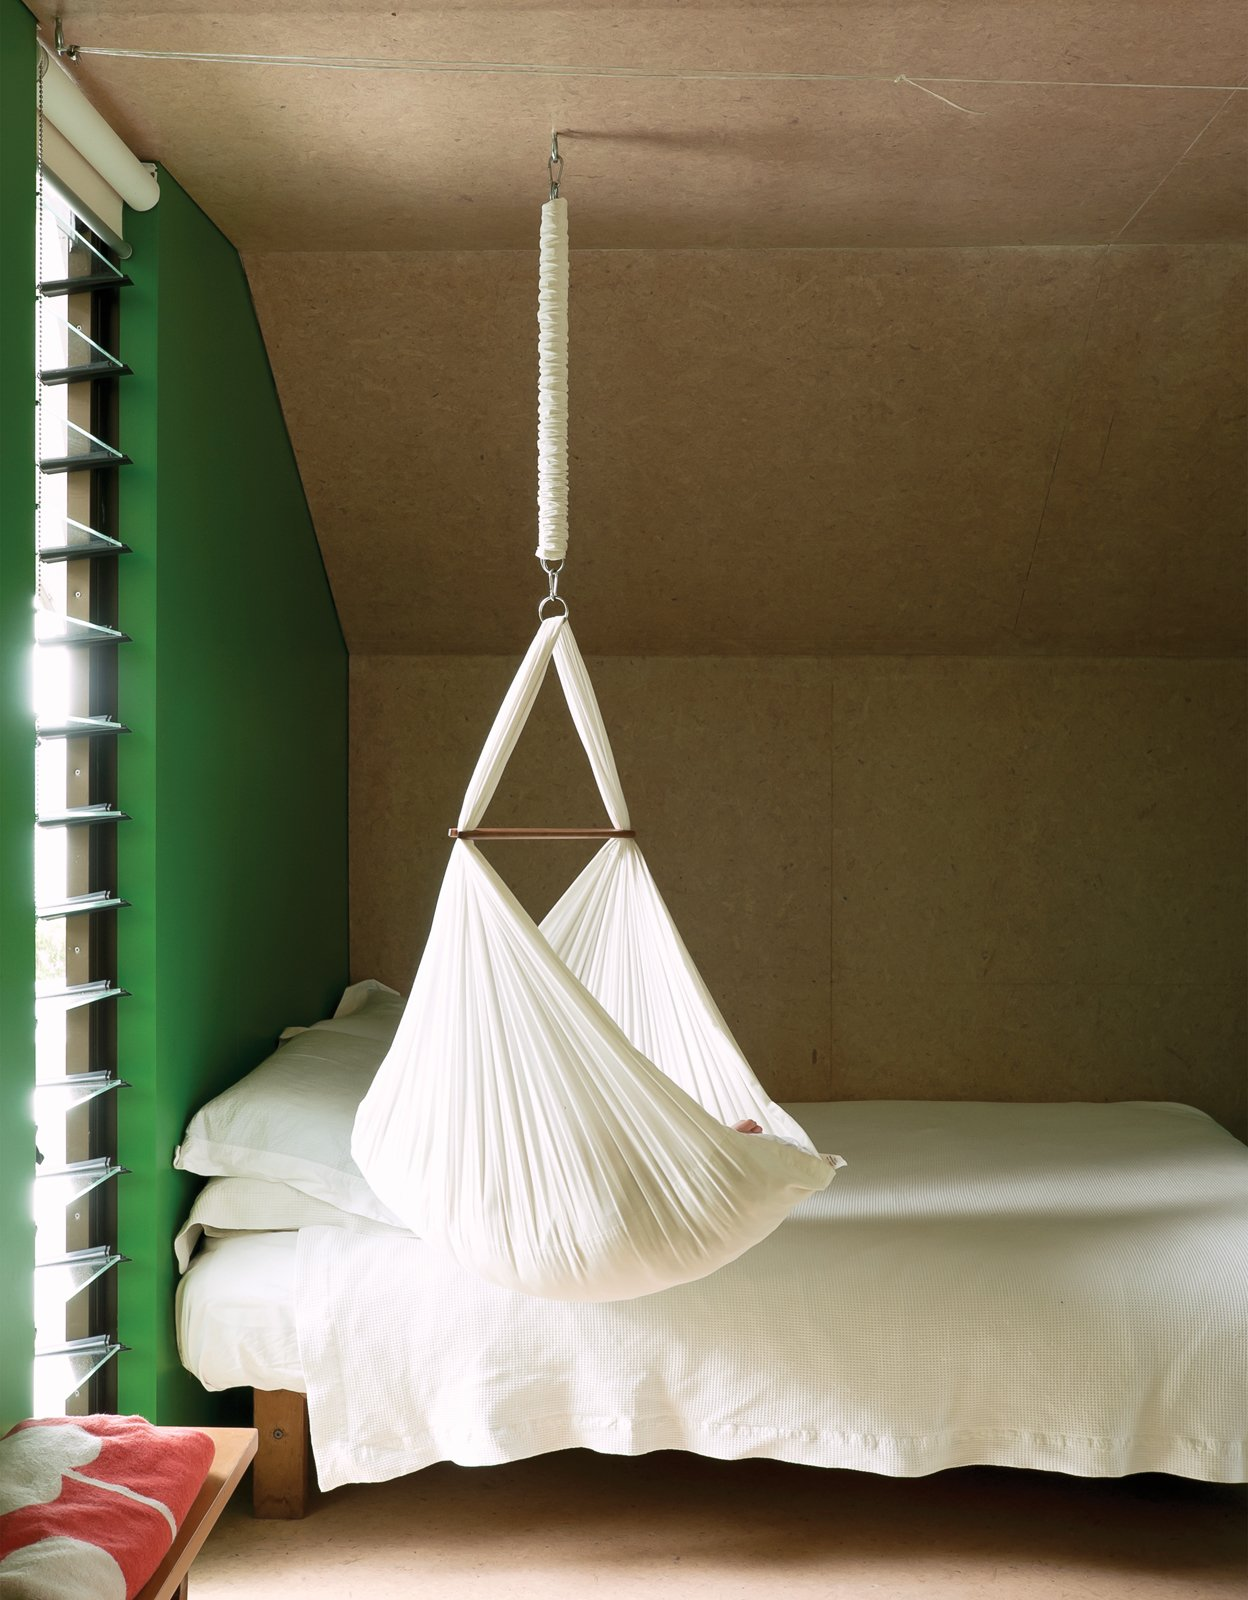 Bedroom and Bed For now, one-year-old Awa is small enough to sleep in the hammock that hangs from the ceiling.  Bedrooms by Dwell from Make Your Parents Happy by Building Them a House